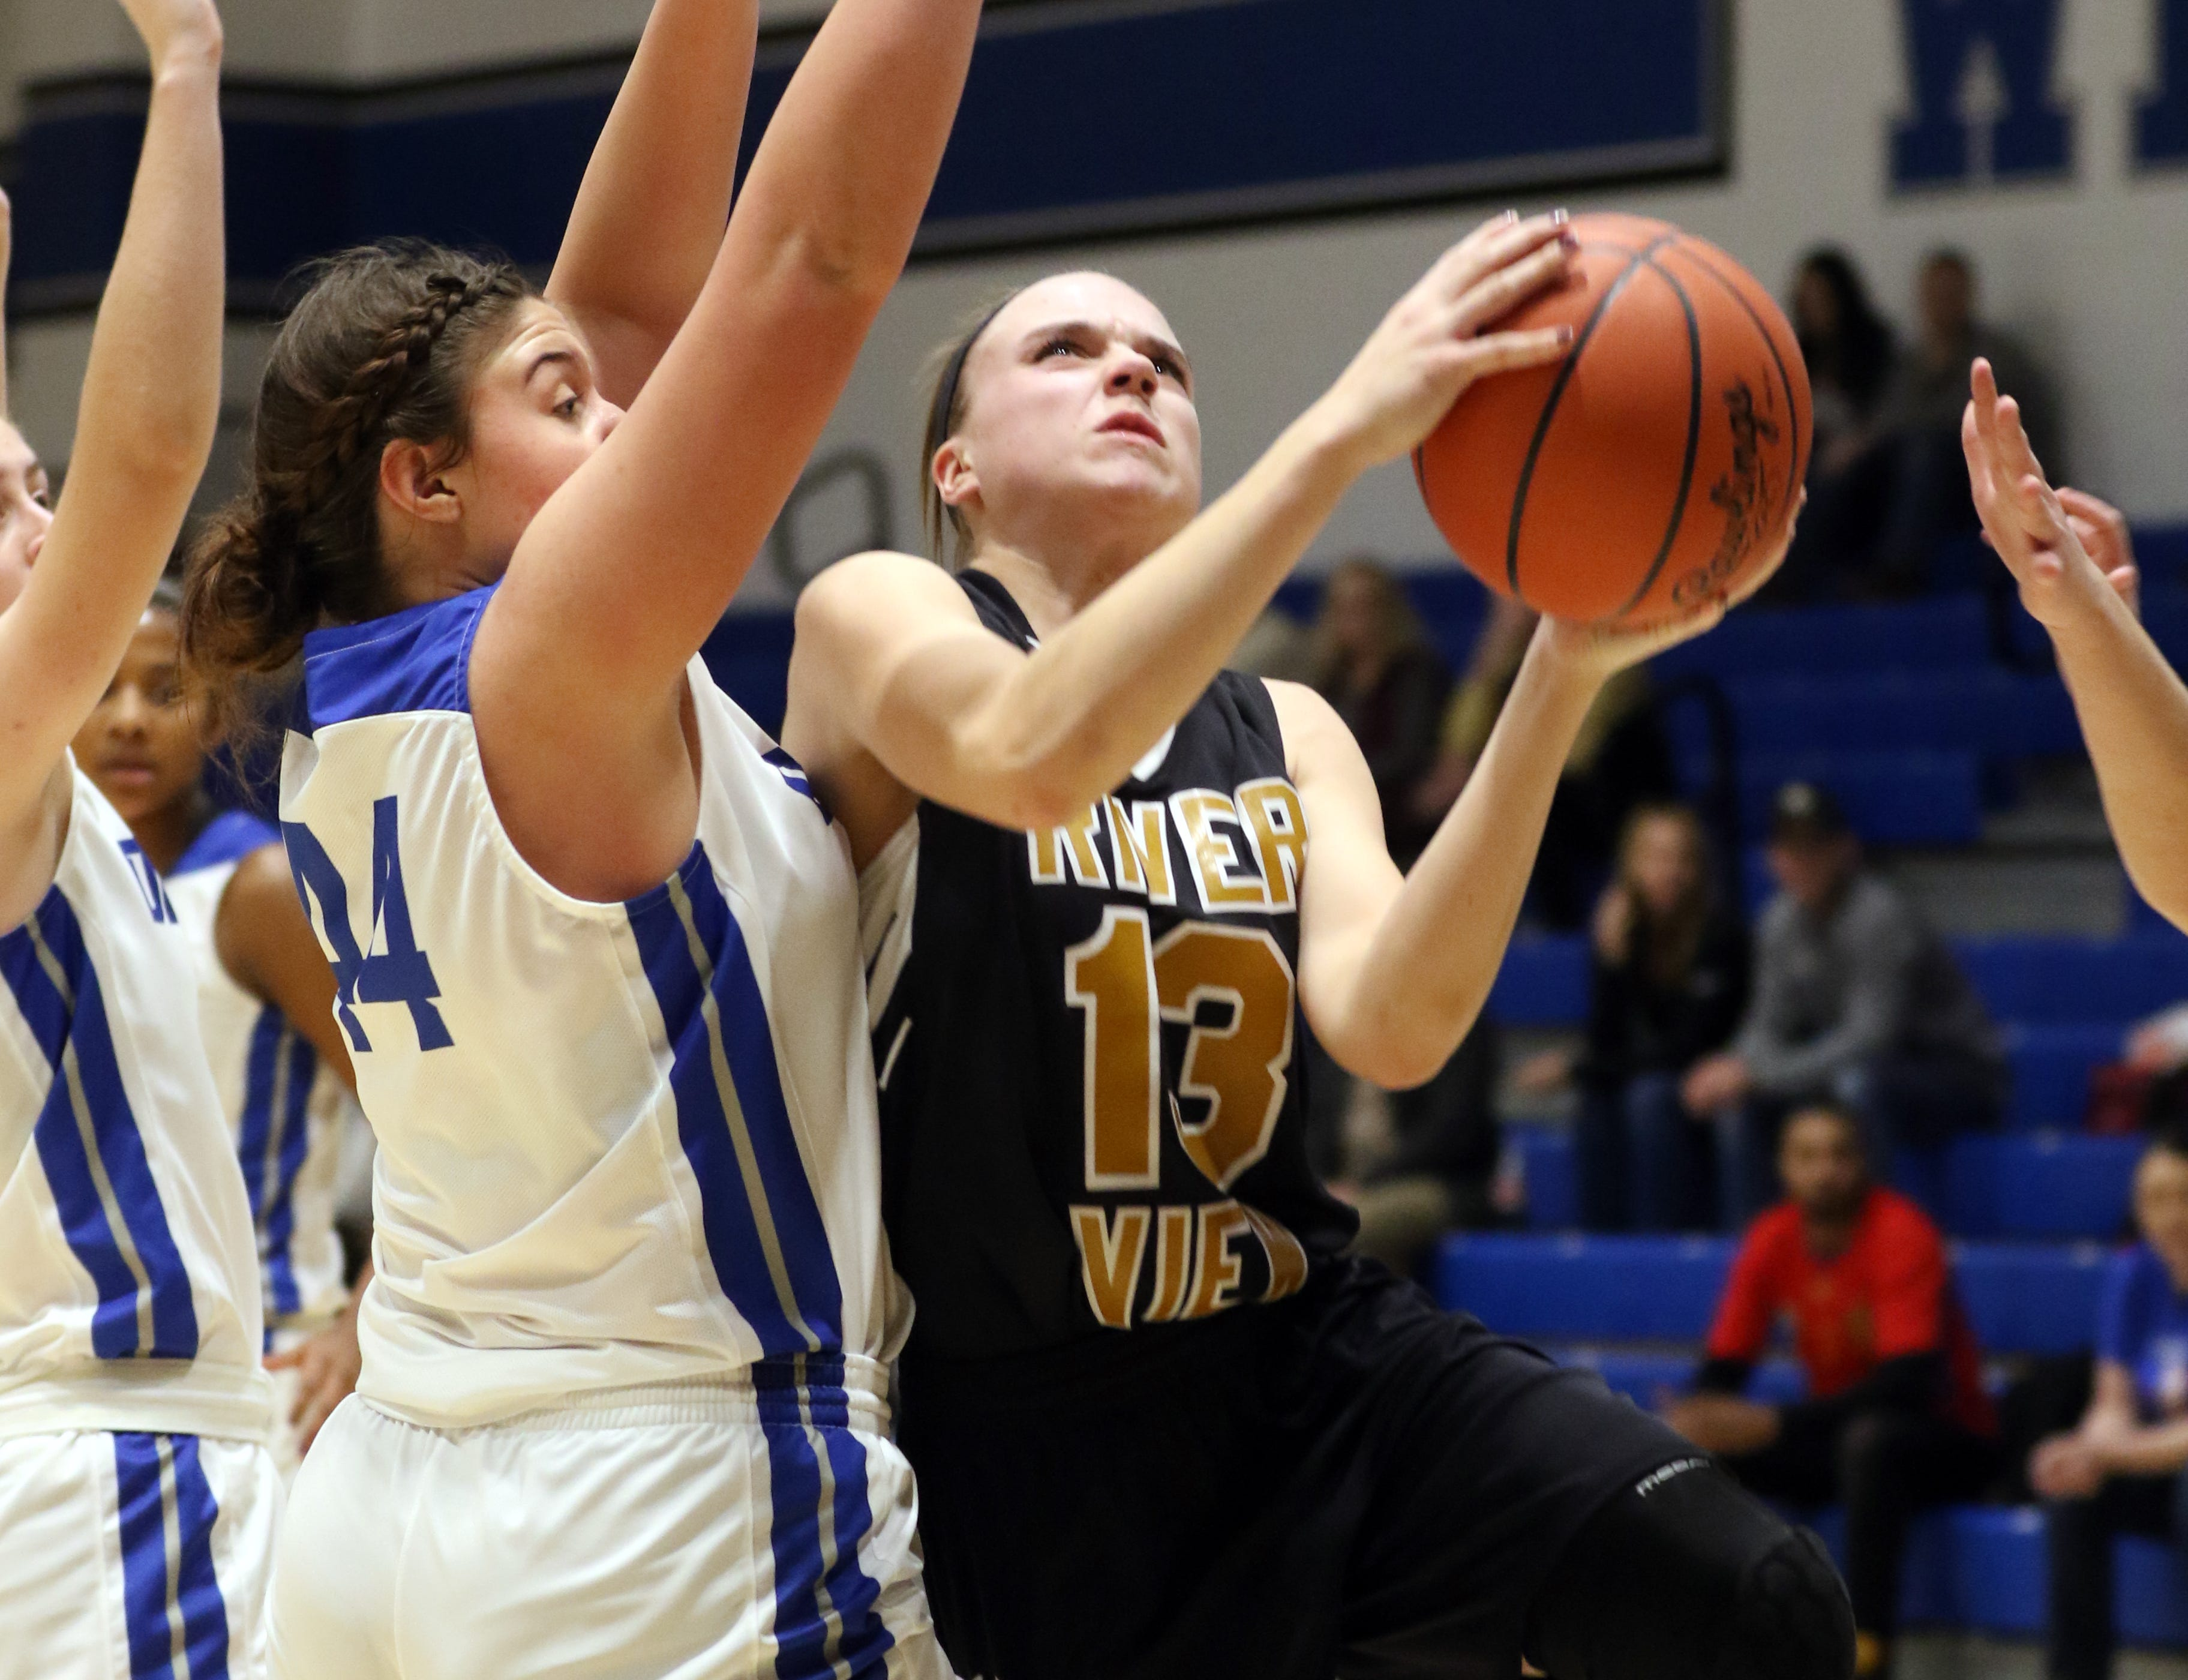 River View's Kelsey Hartsock puts up a shot against Zanesville.